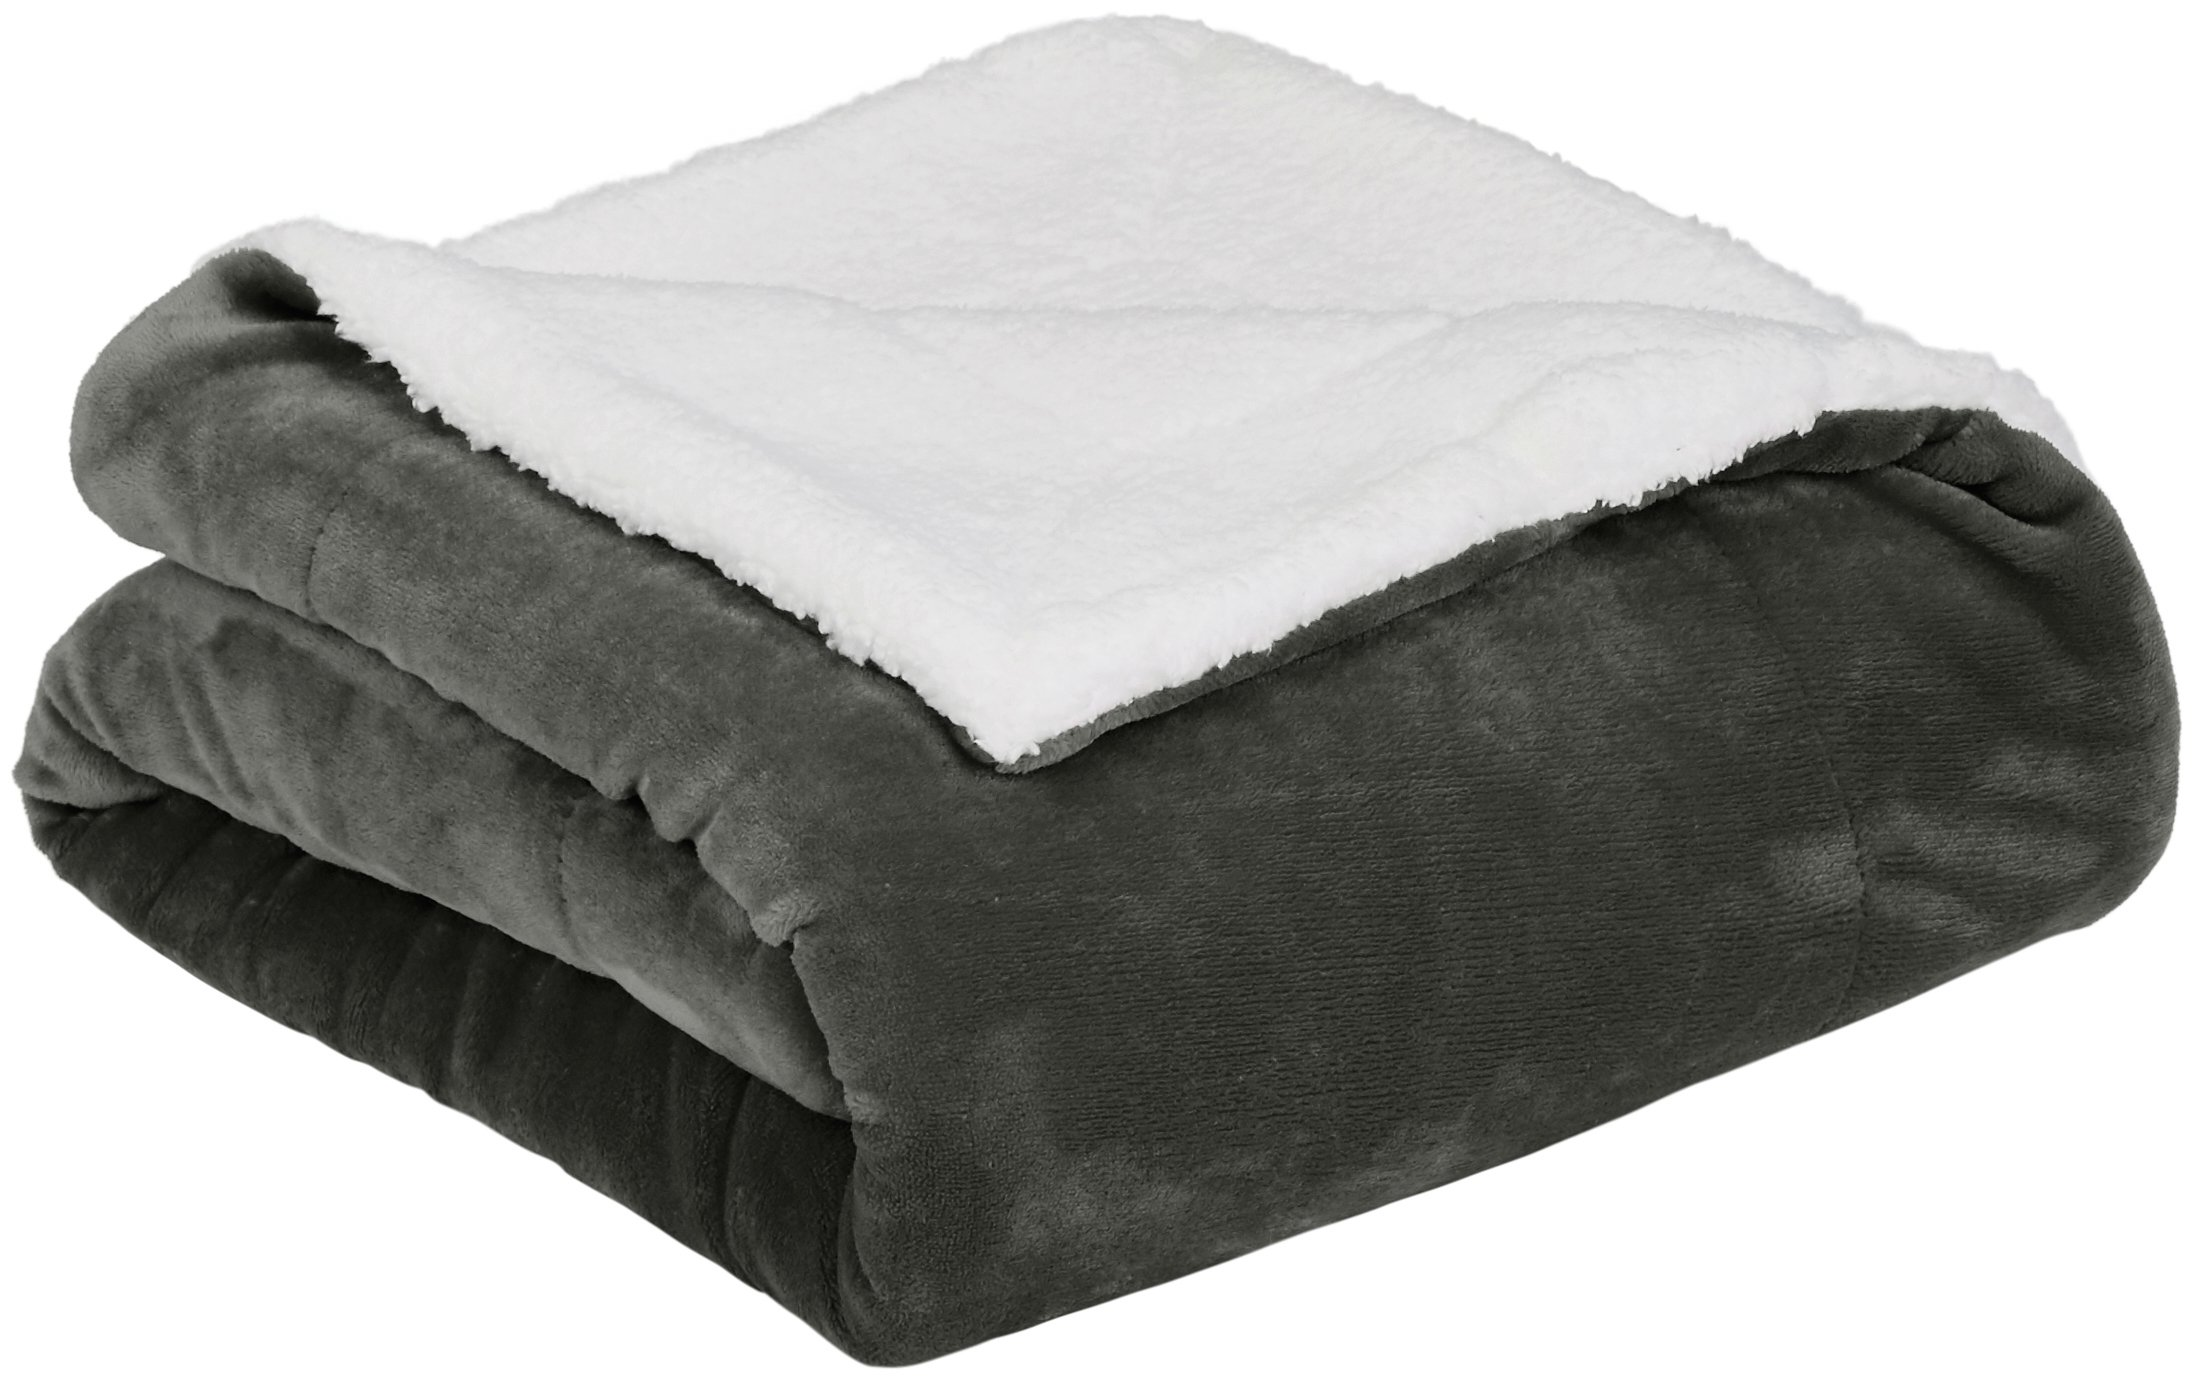 AmazonBasics Soft Micromink Sherpa Throw Blanket - Full or Queen, Charcoal by AmazonBasics